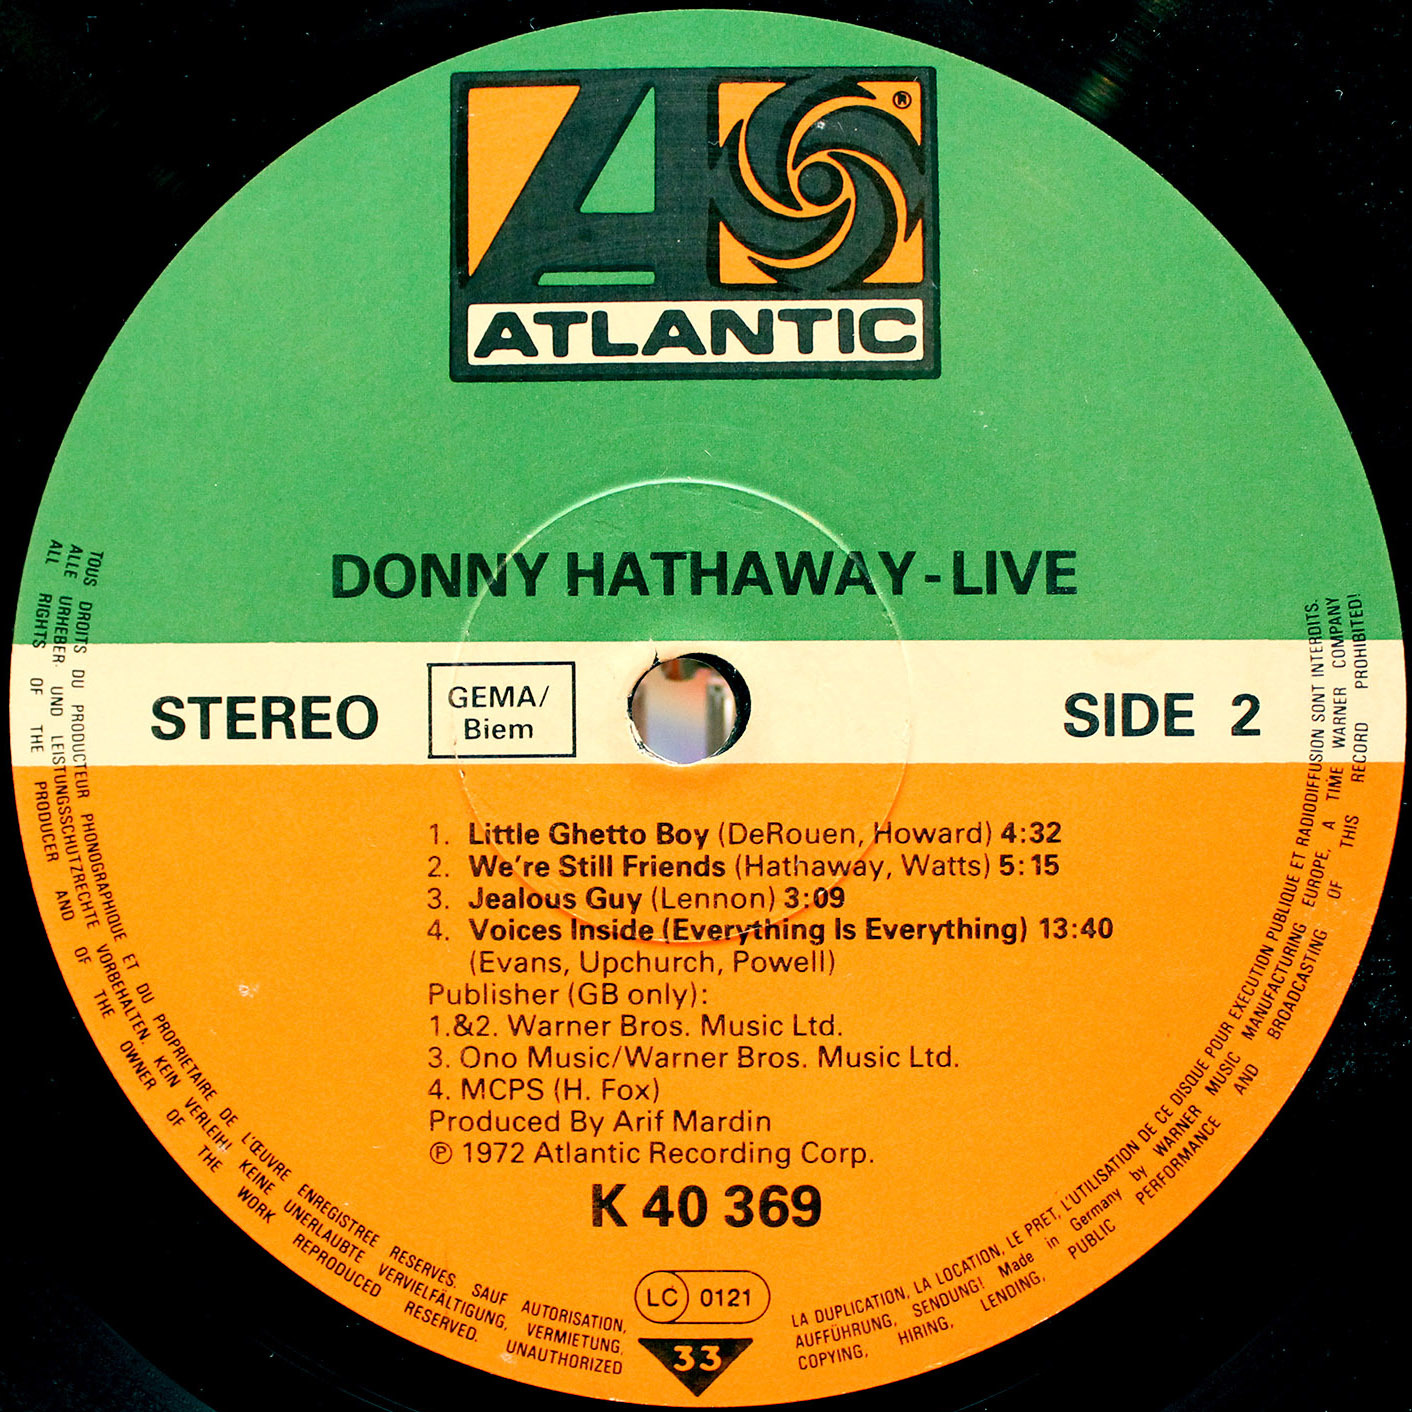 Donny Hathaway live 04